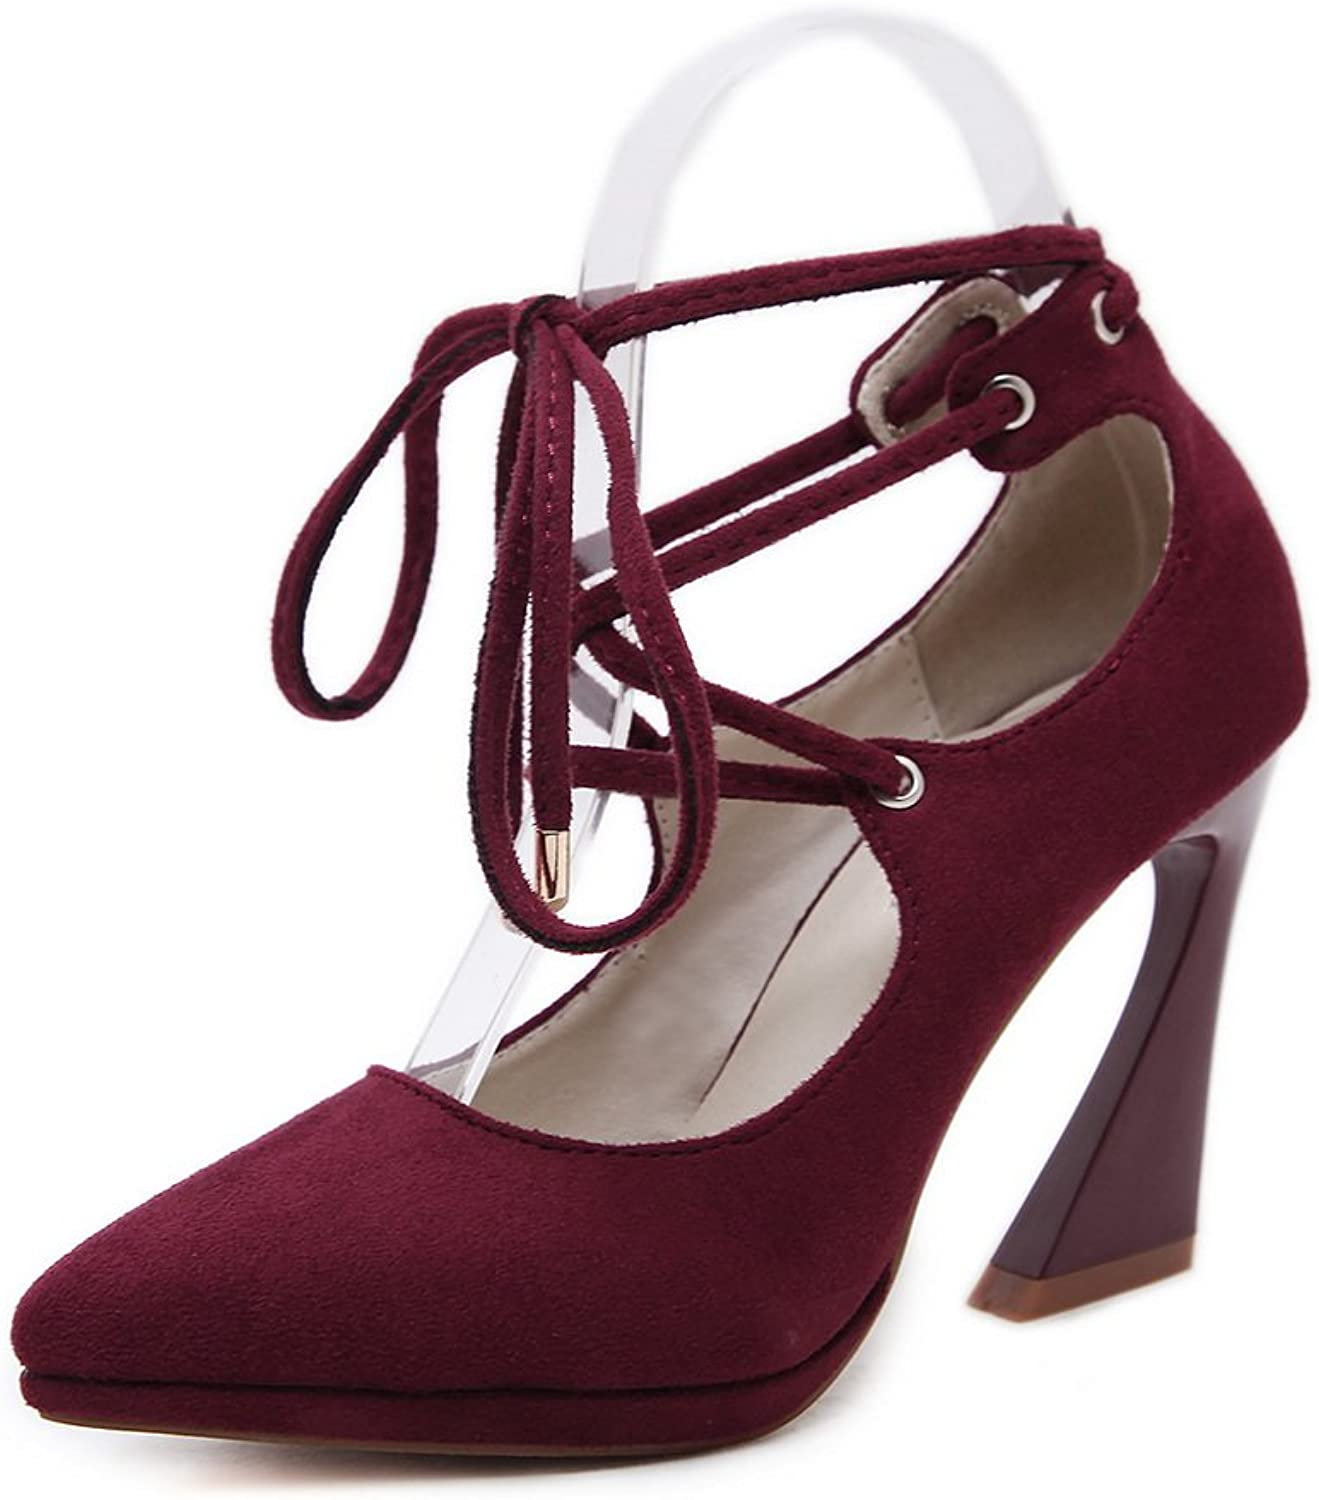 1TO9 Womens Chunky Heels Lace-Up Pointed-Toe Claret Suede Pumps shoes - 4.5 B(M) US